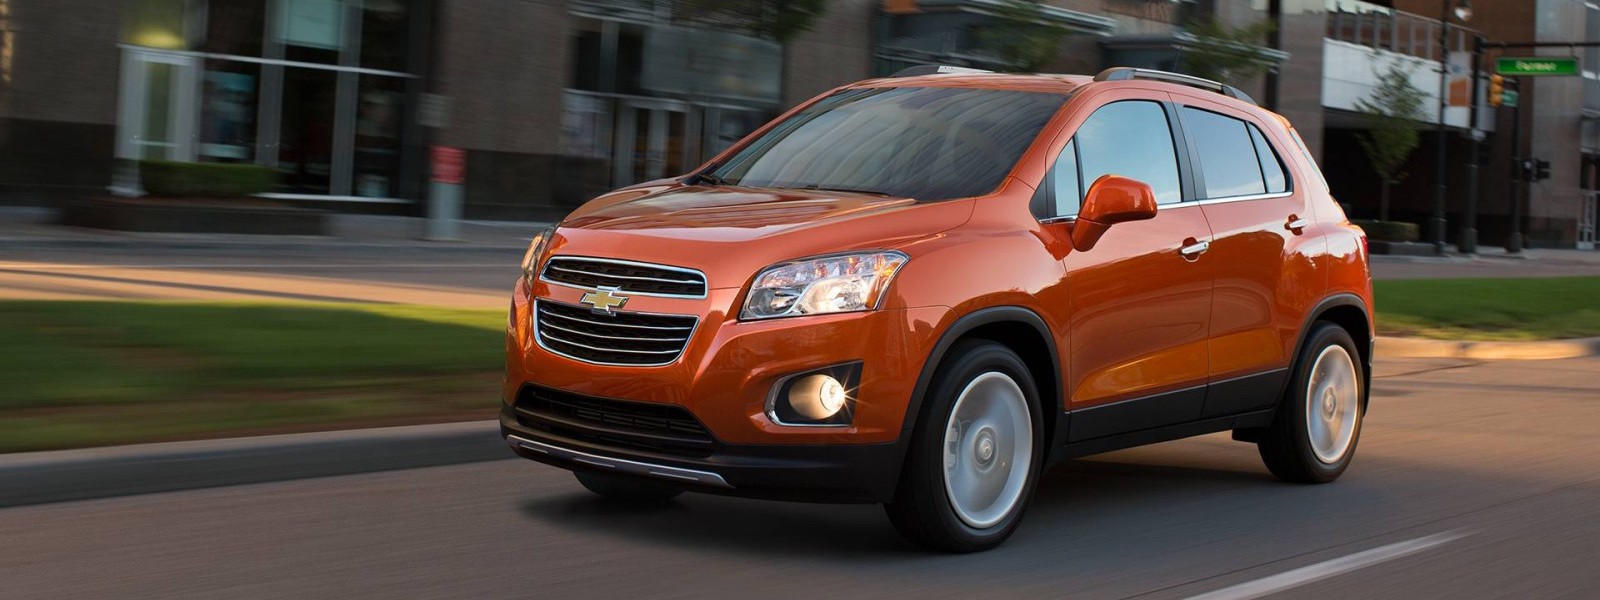 An orange 2016 Chevy Trax is driving down a blurred city street.